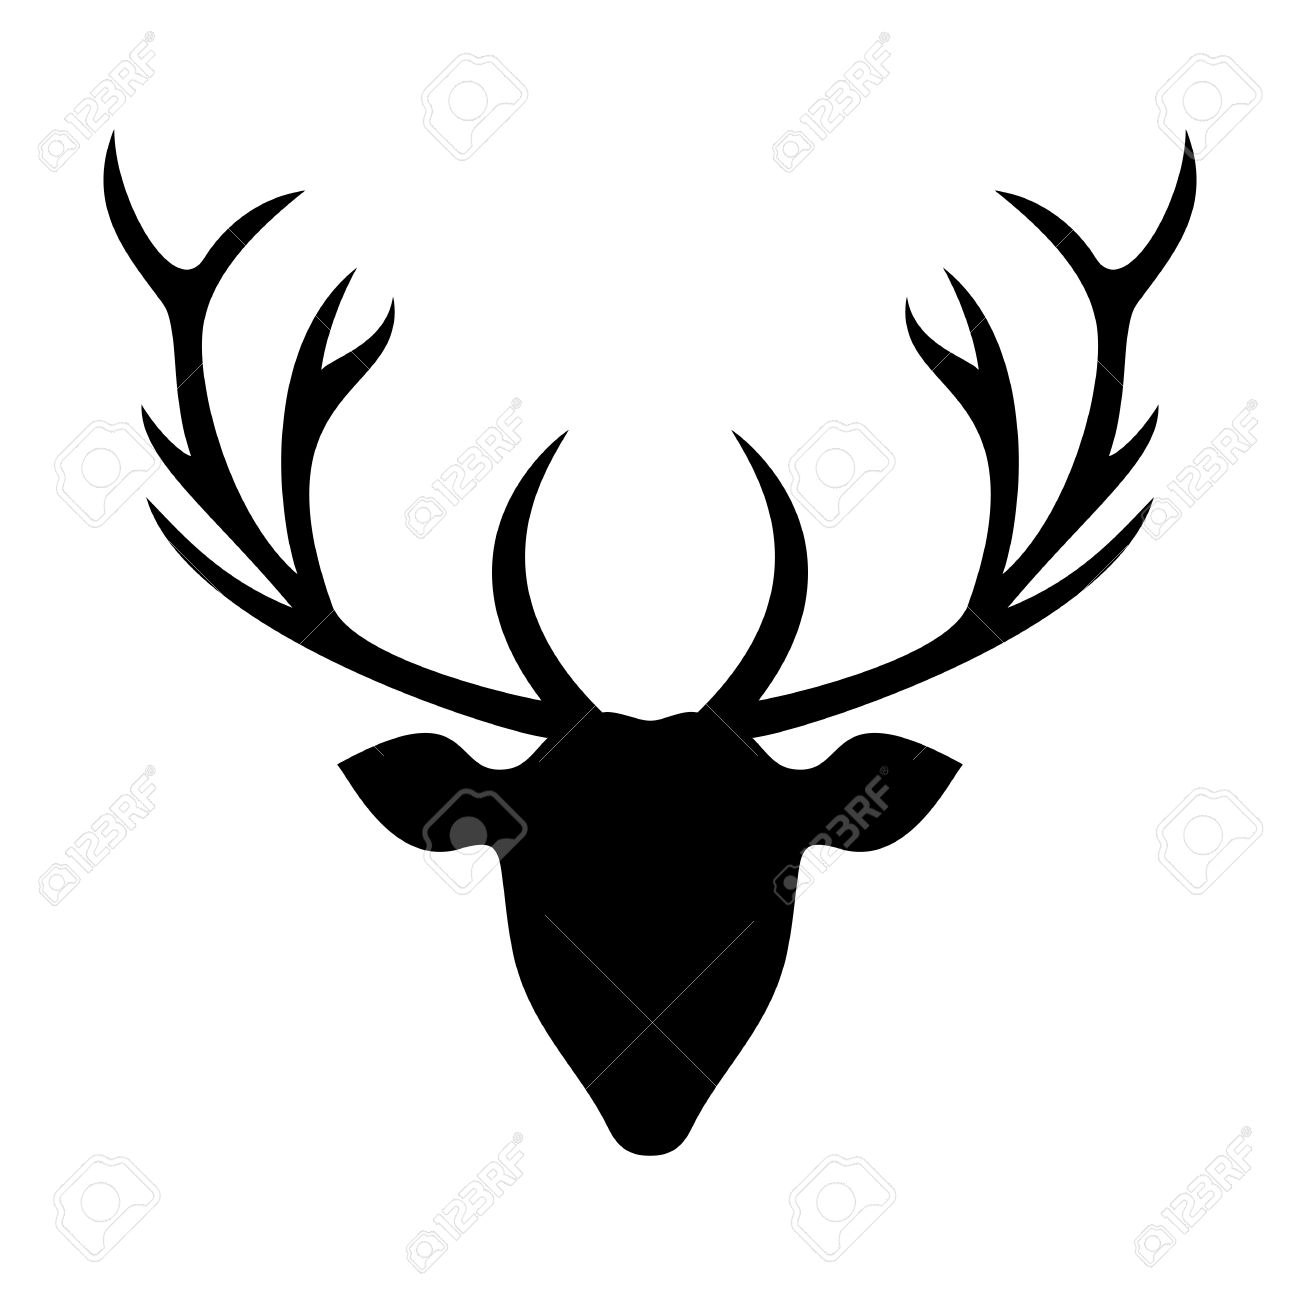 picture regarding Printable Deer Head Silhouette referred to as Wonderful Deer Silhouette Stencil Drawing Deer Brain Silhouette